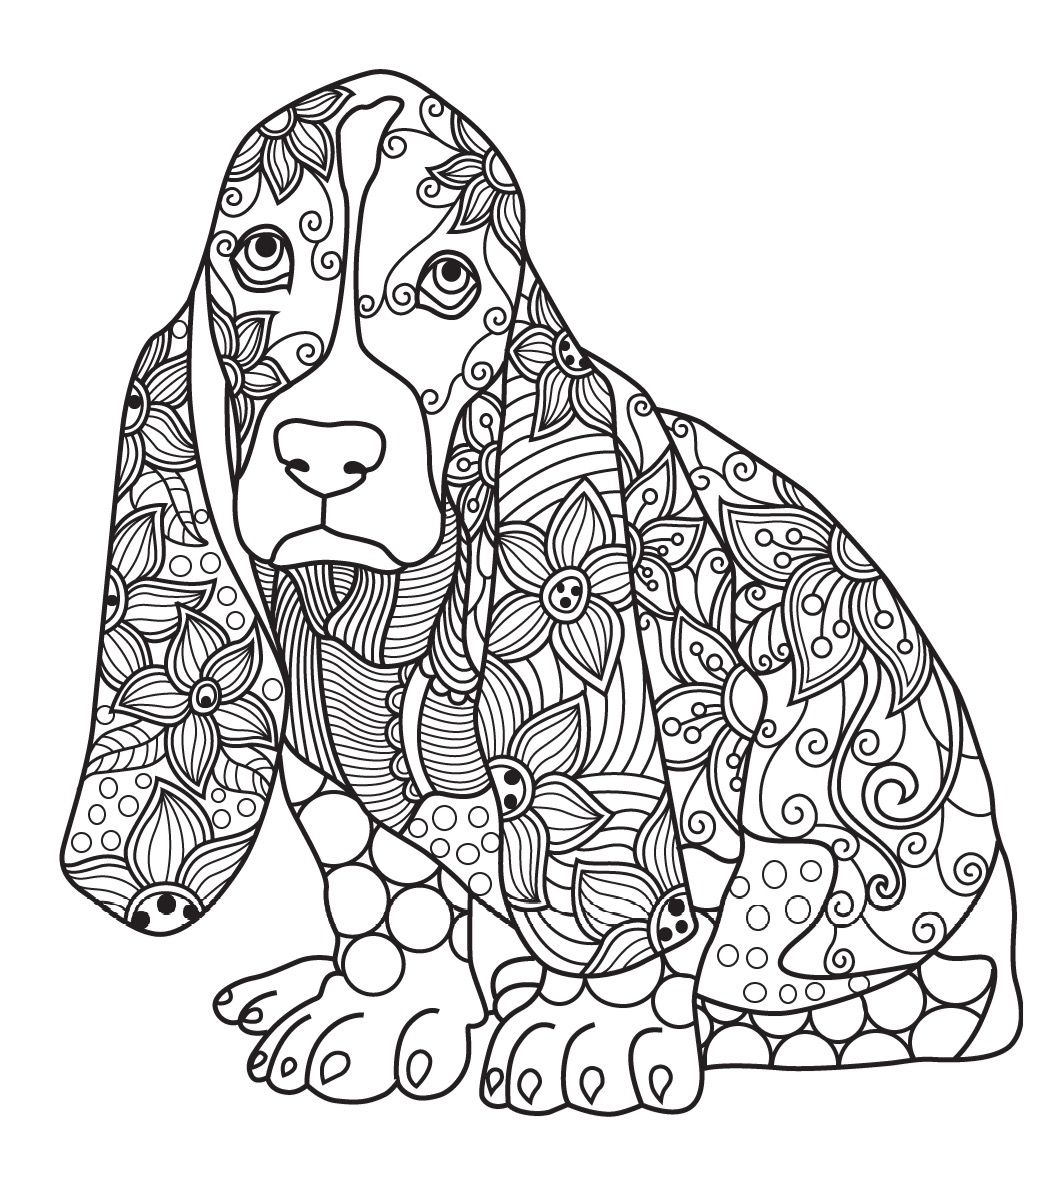 Dog Colorish Coloring Book For Adults Mandala Relax By Goodsofttech Dog Coloring Page Mandala Coloring Pages Cat Coloring Book